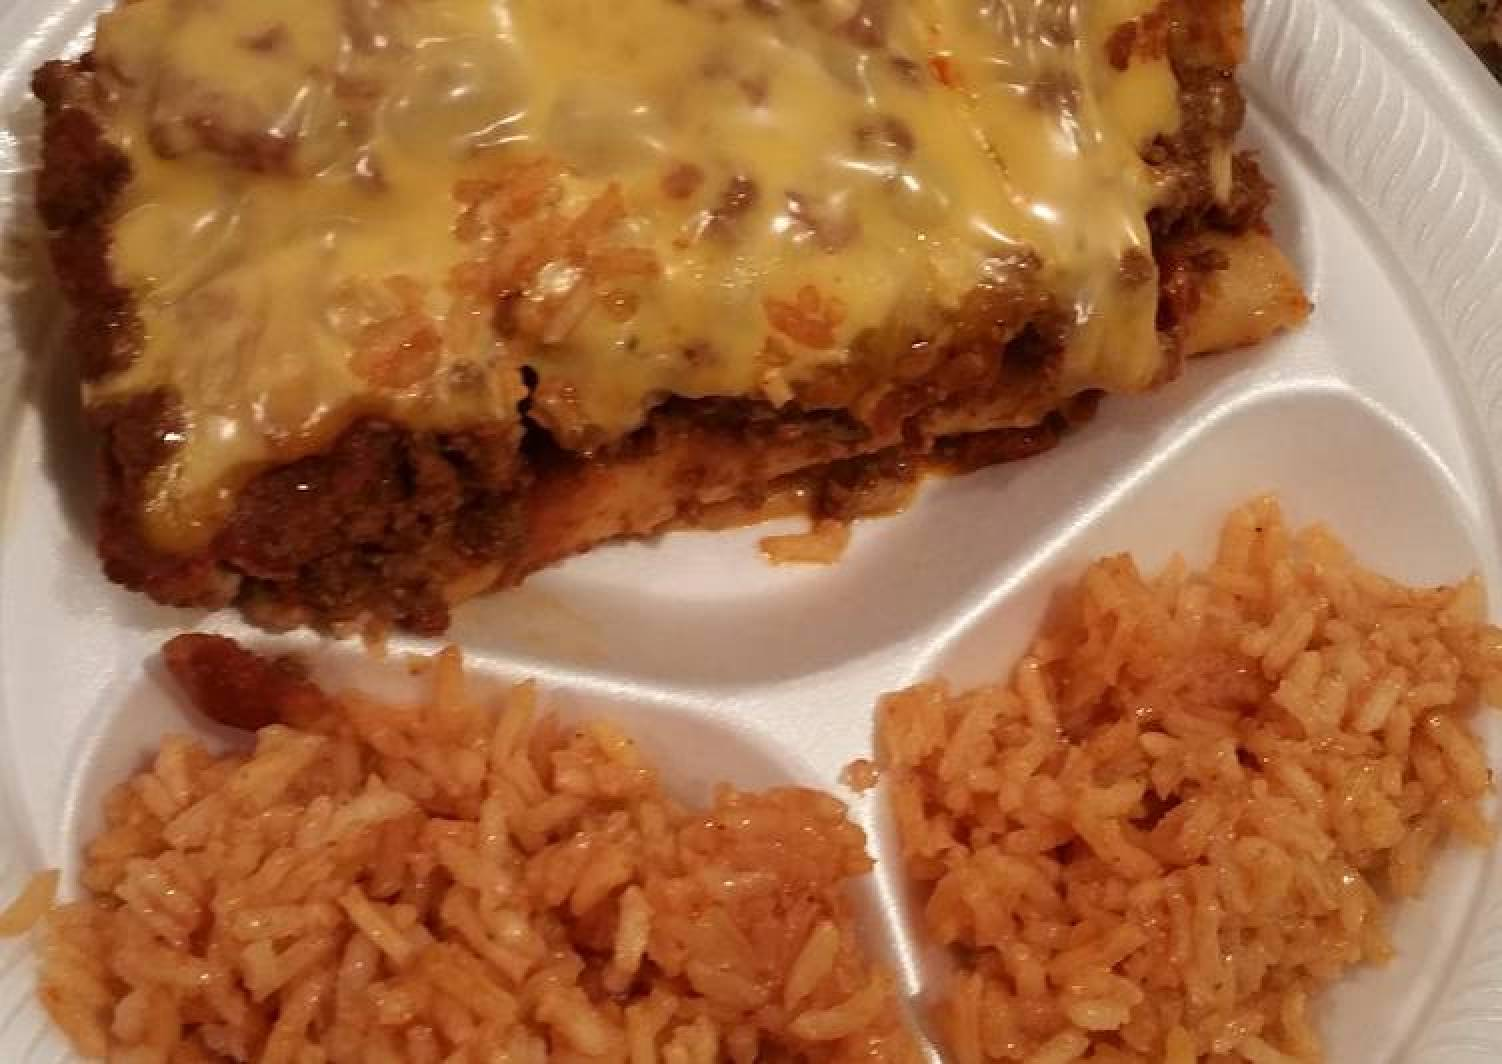 Homemade Beef and Cheese Enchiladas- Recipe from Lubys Cafeteria made simple